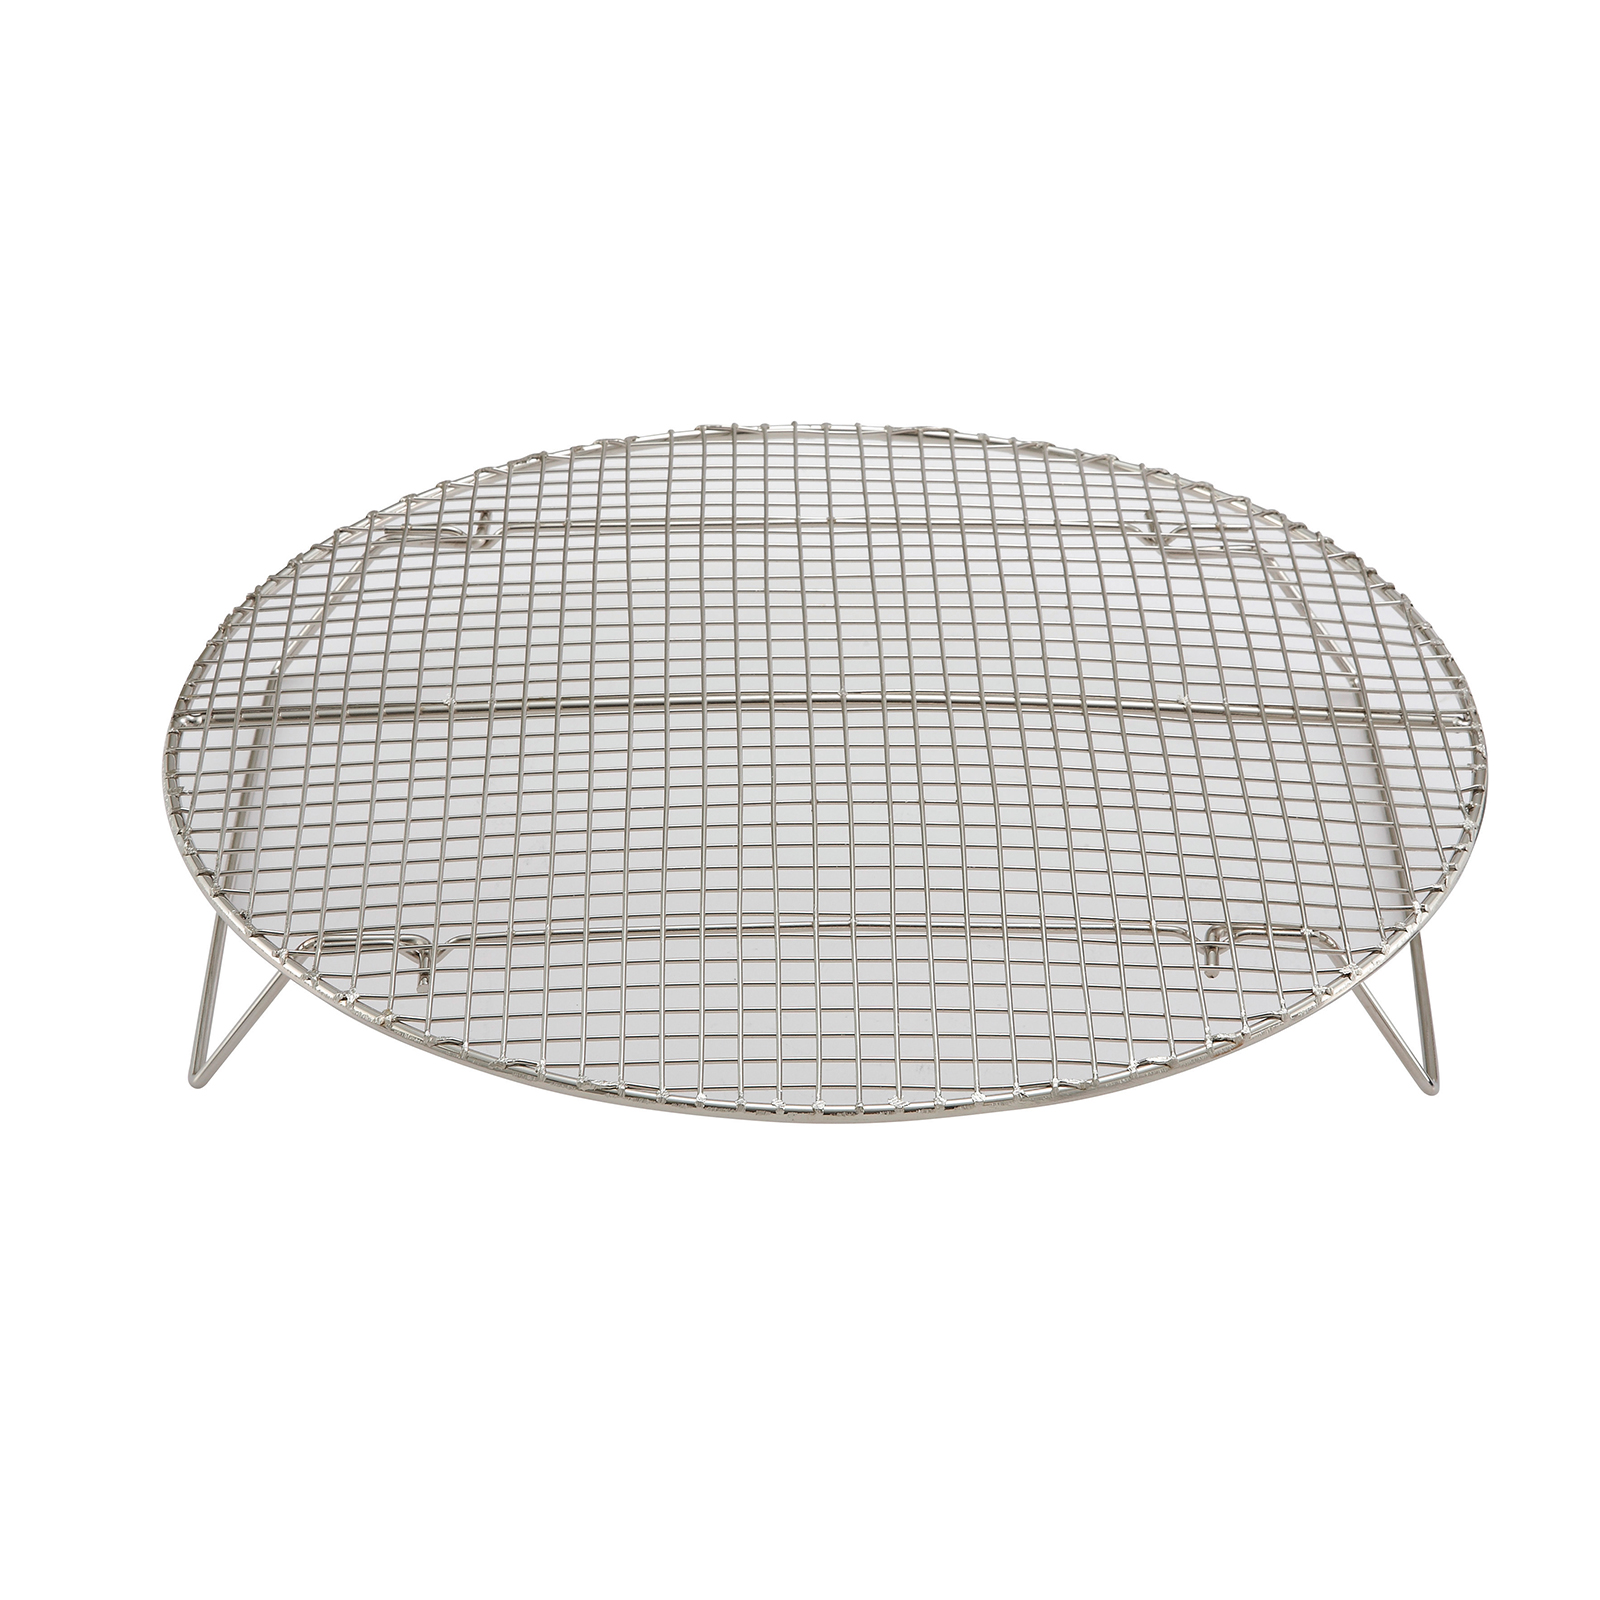 Winco STR-18 wire pan rack / grate